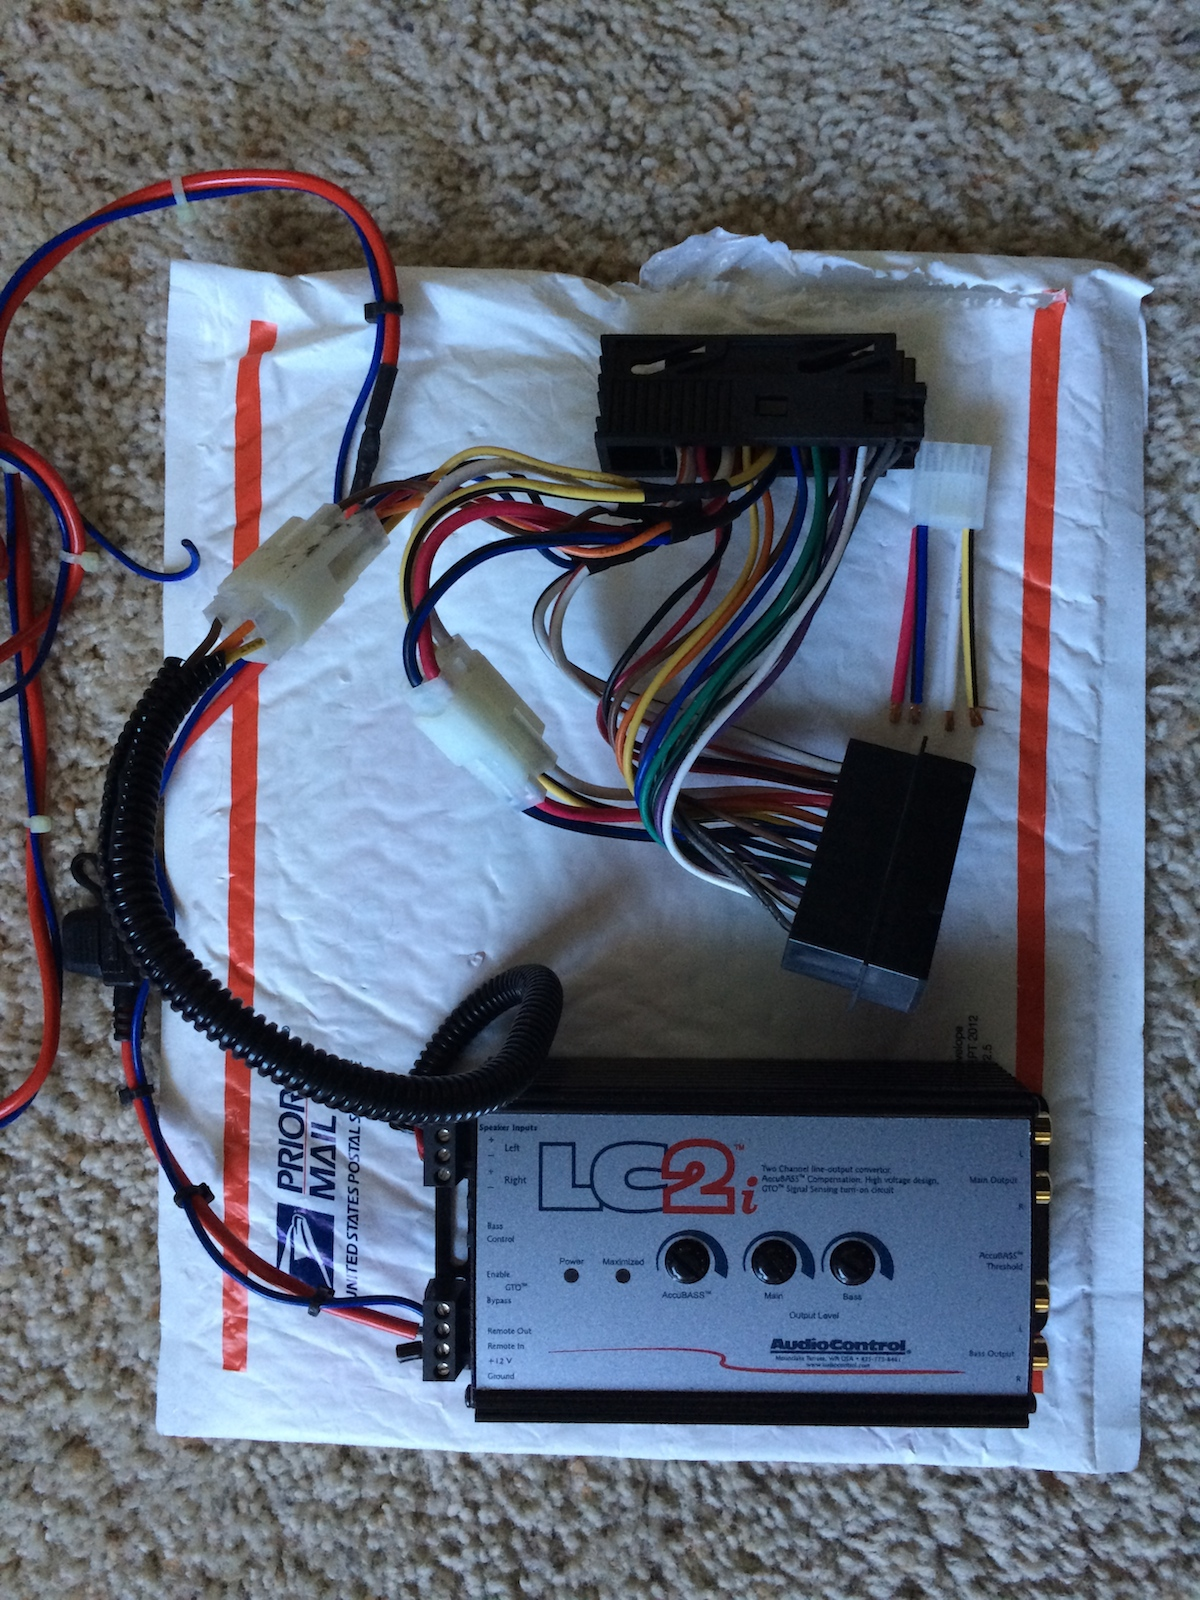 technic u0026 39 s pnp harness with audiocontrol lc2i